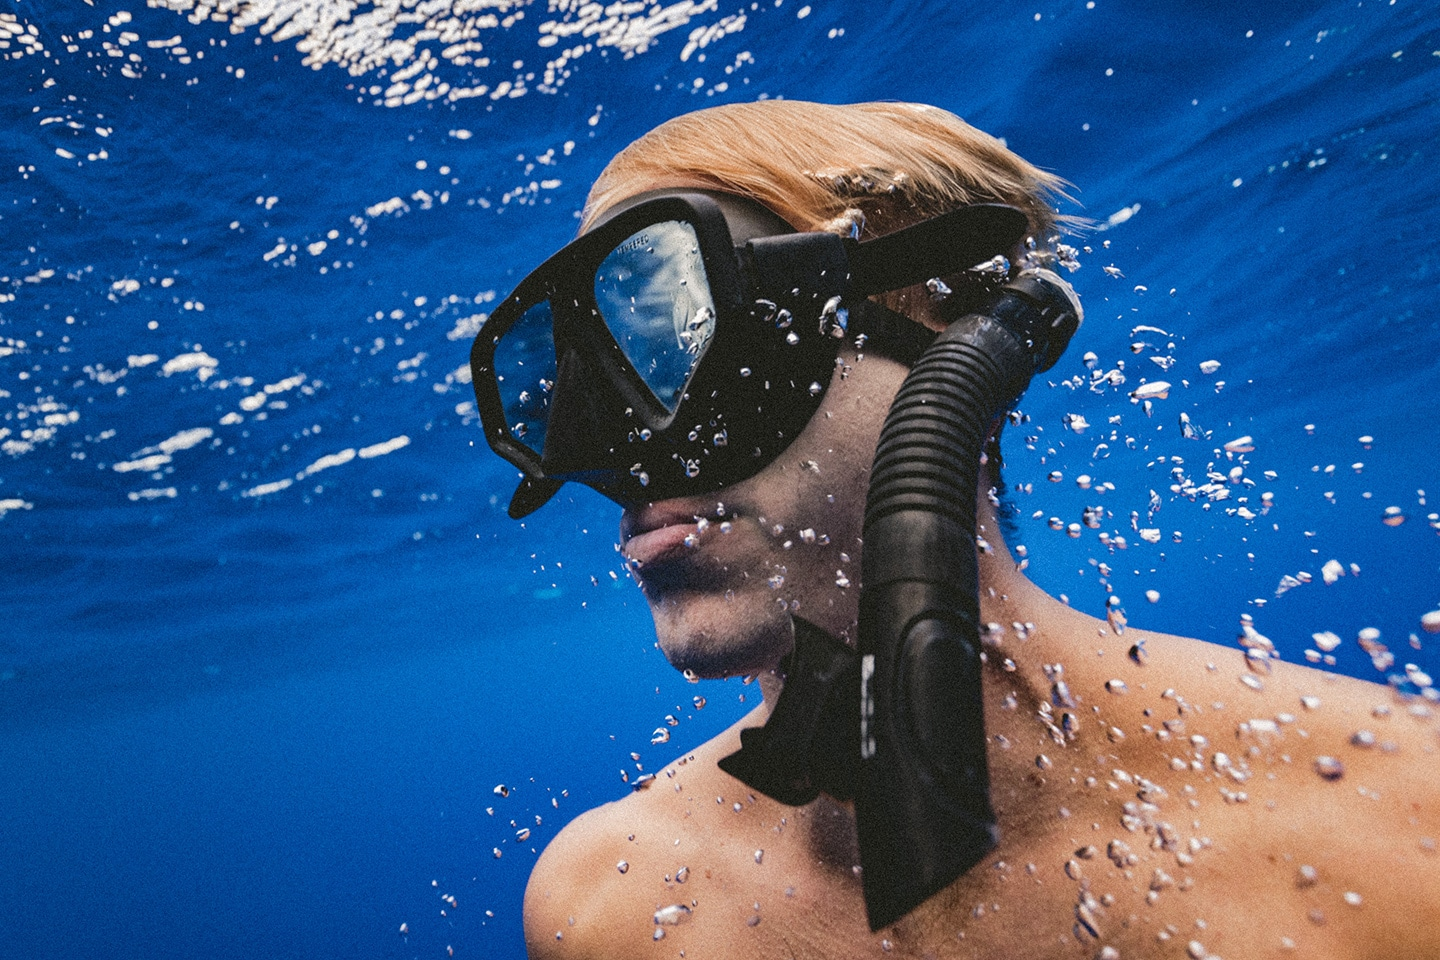 Man underwater with mask and snorkel